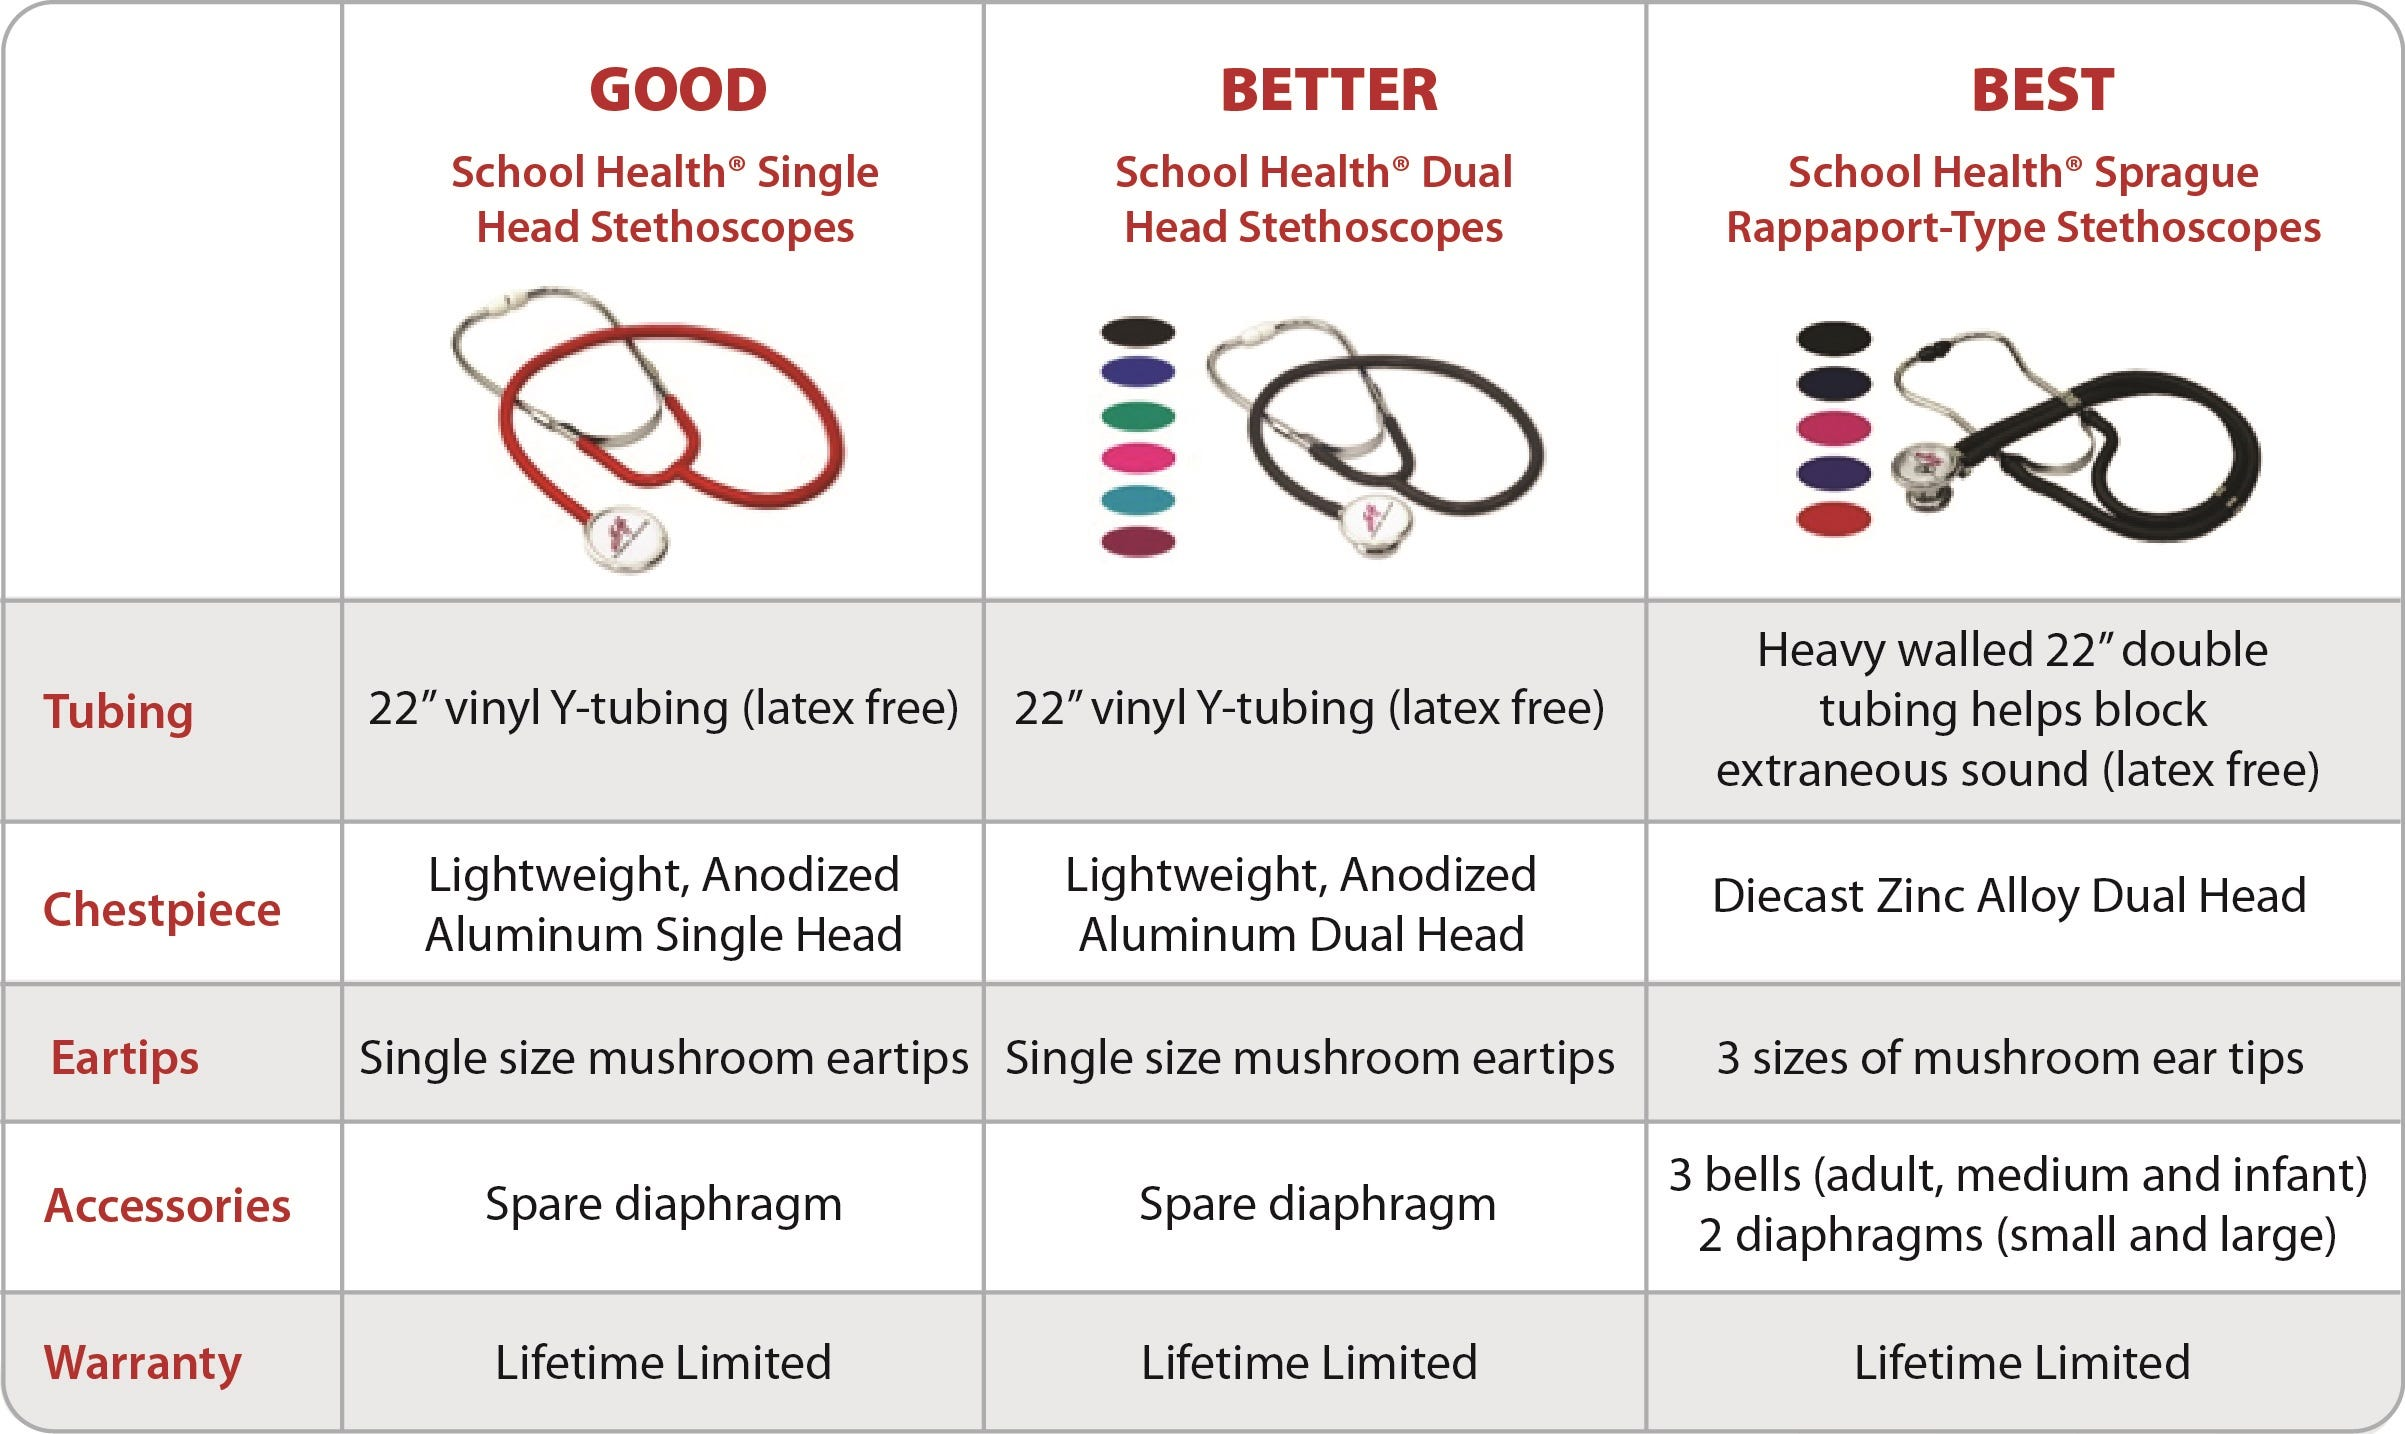 Compare School Health Stethoscopes